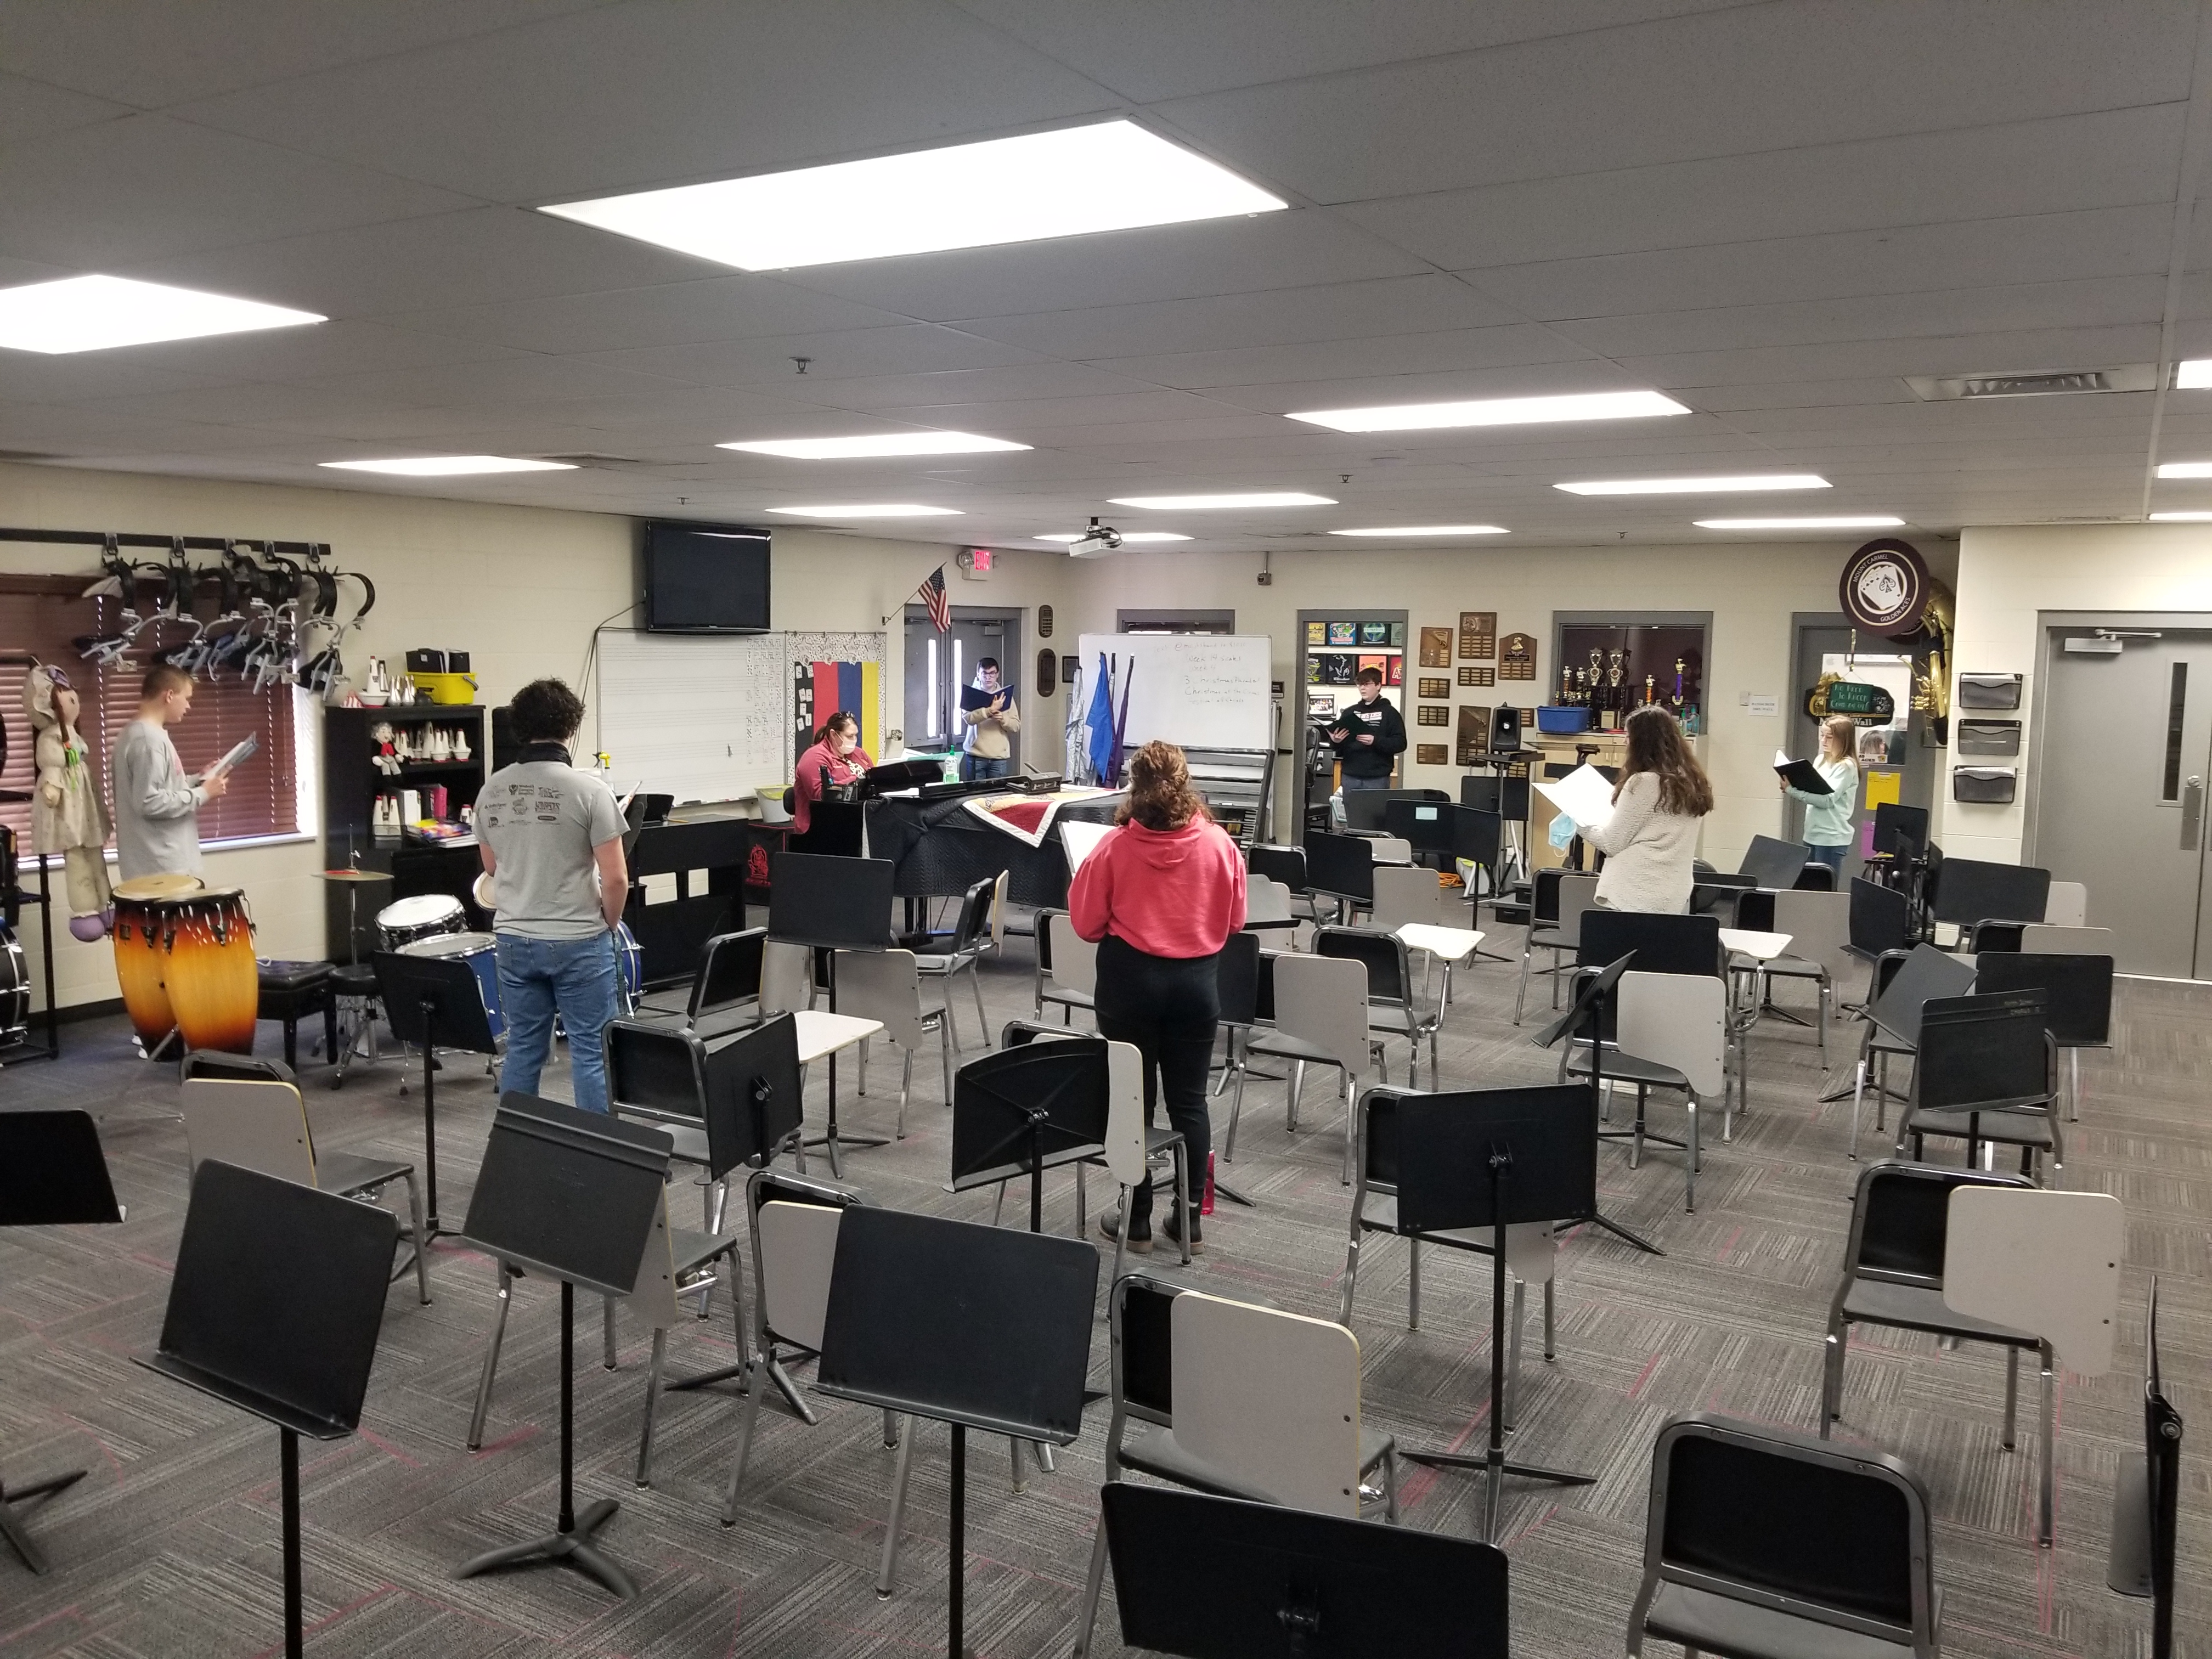 Practicing for Caroltunes